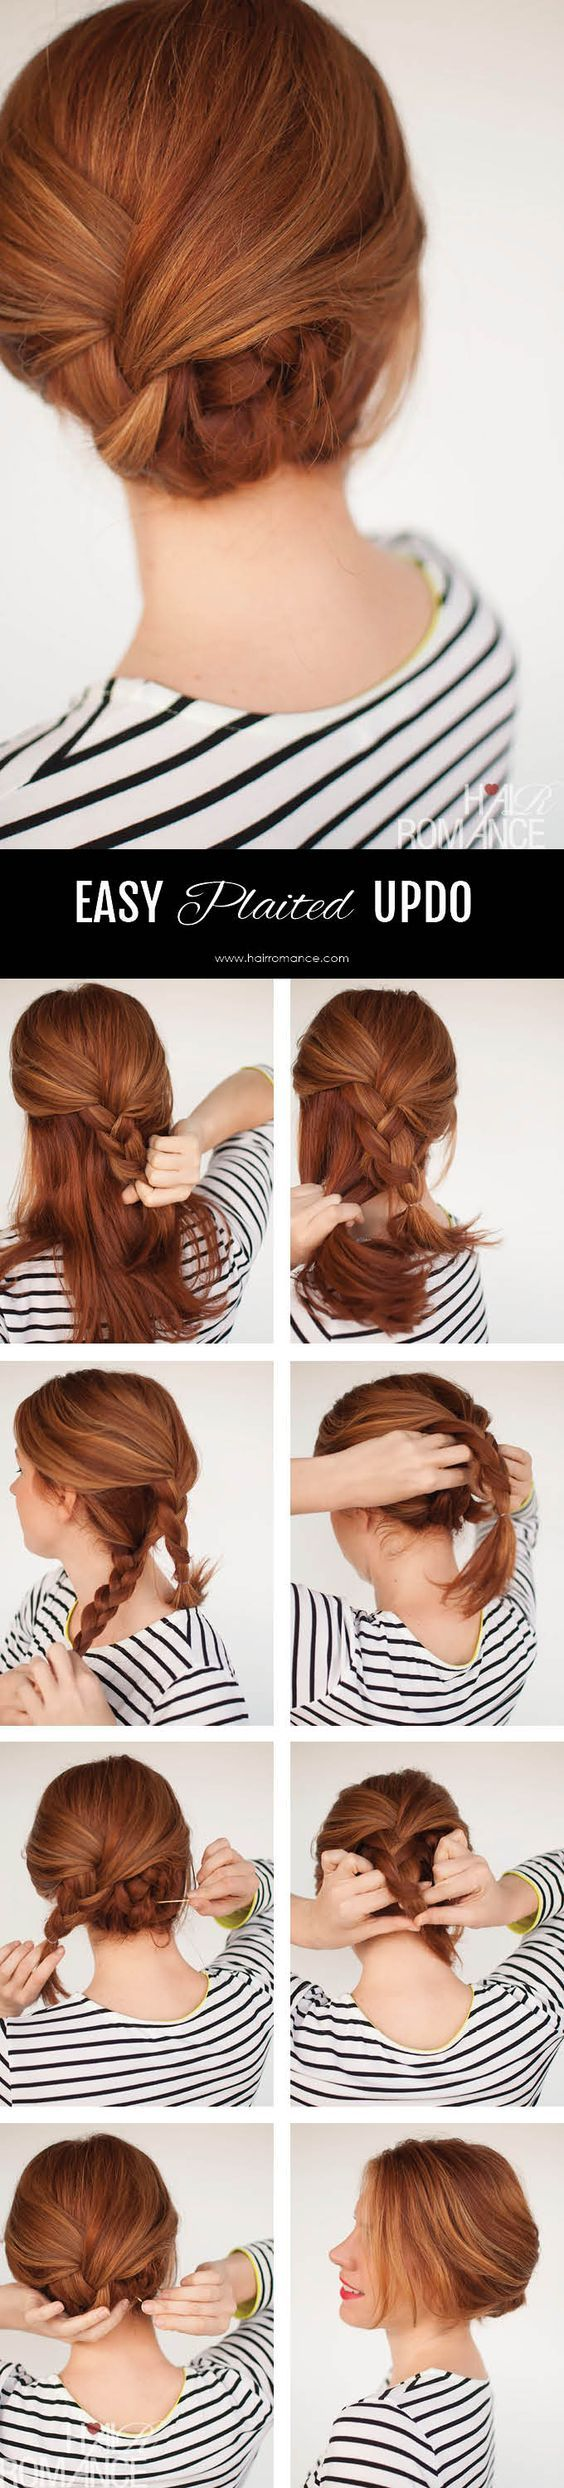 Easy updo braid lazy hairstyle